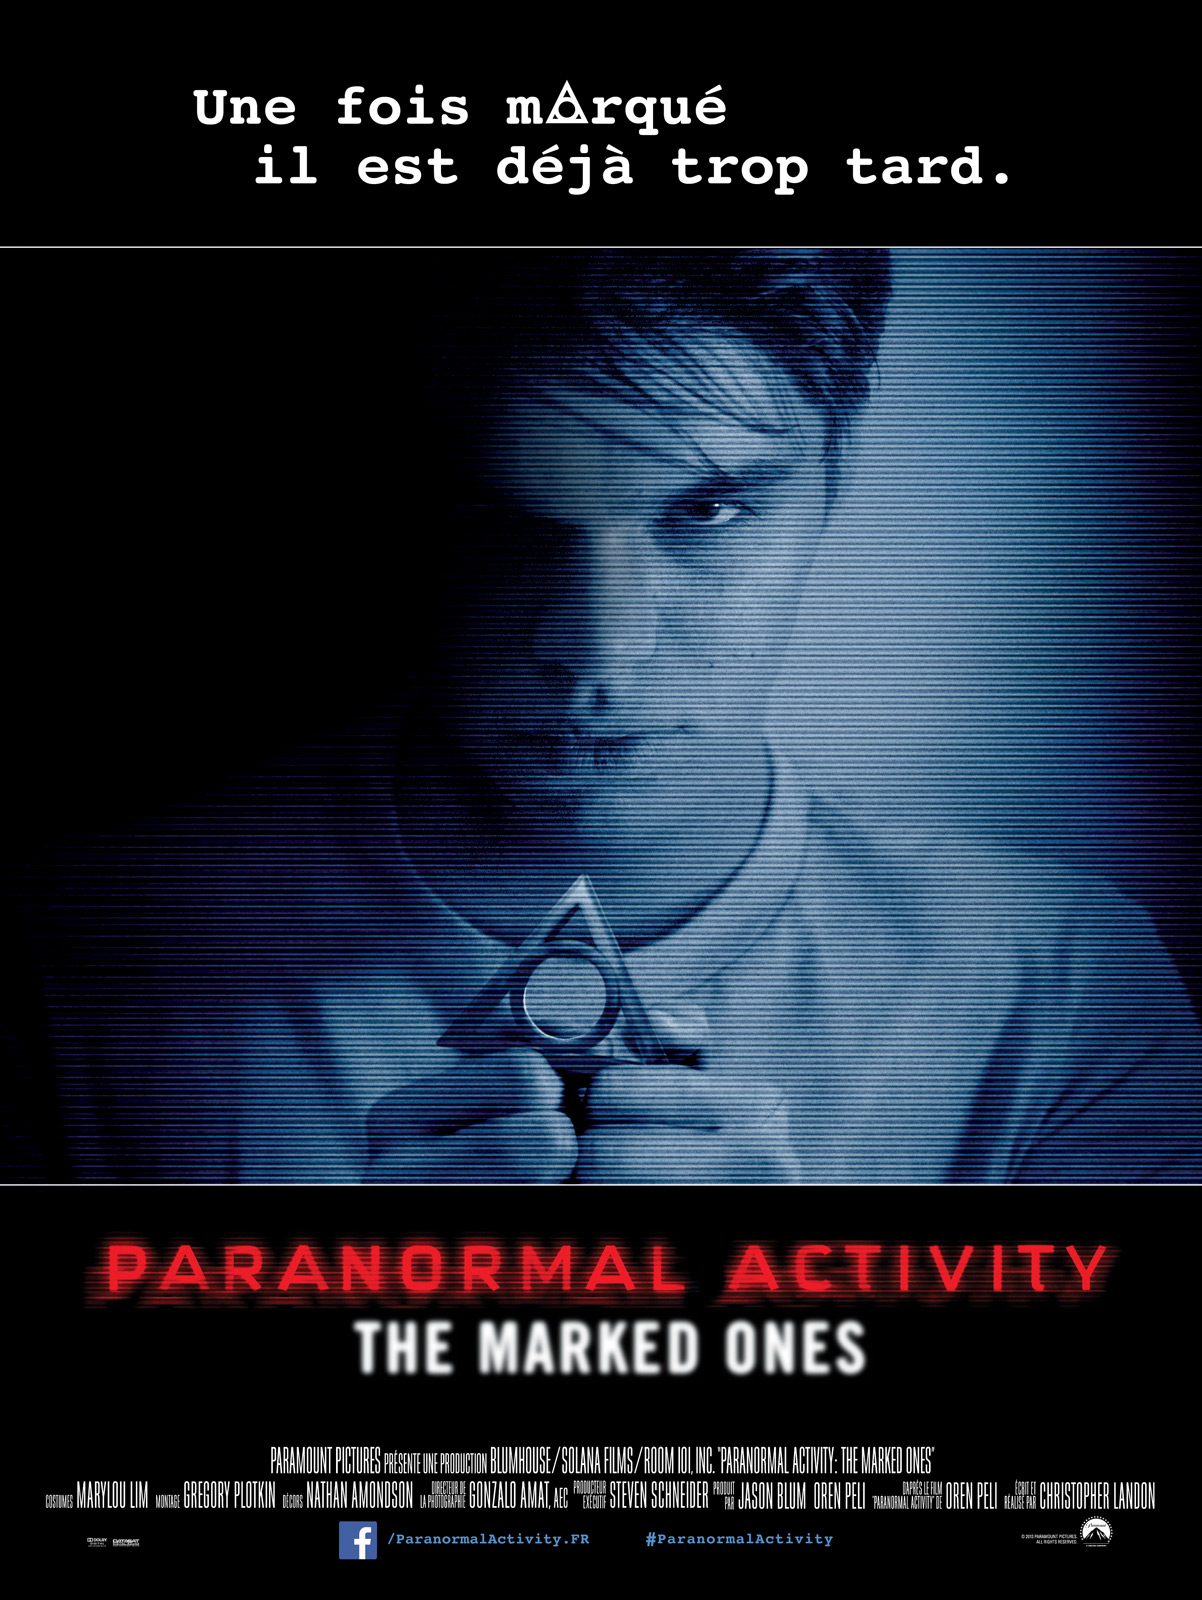 paranormal activity 4 resume